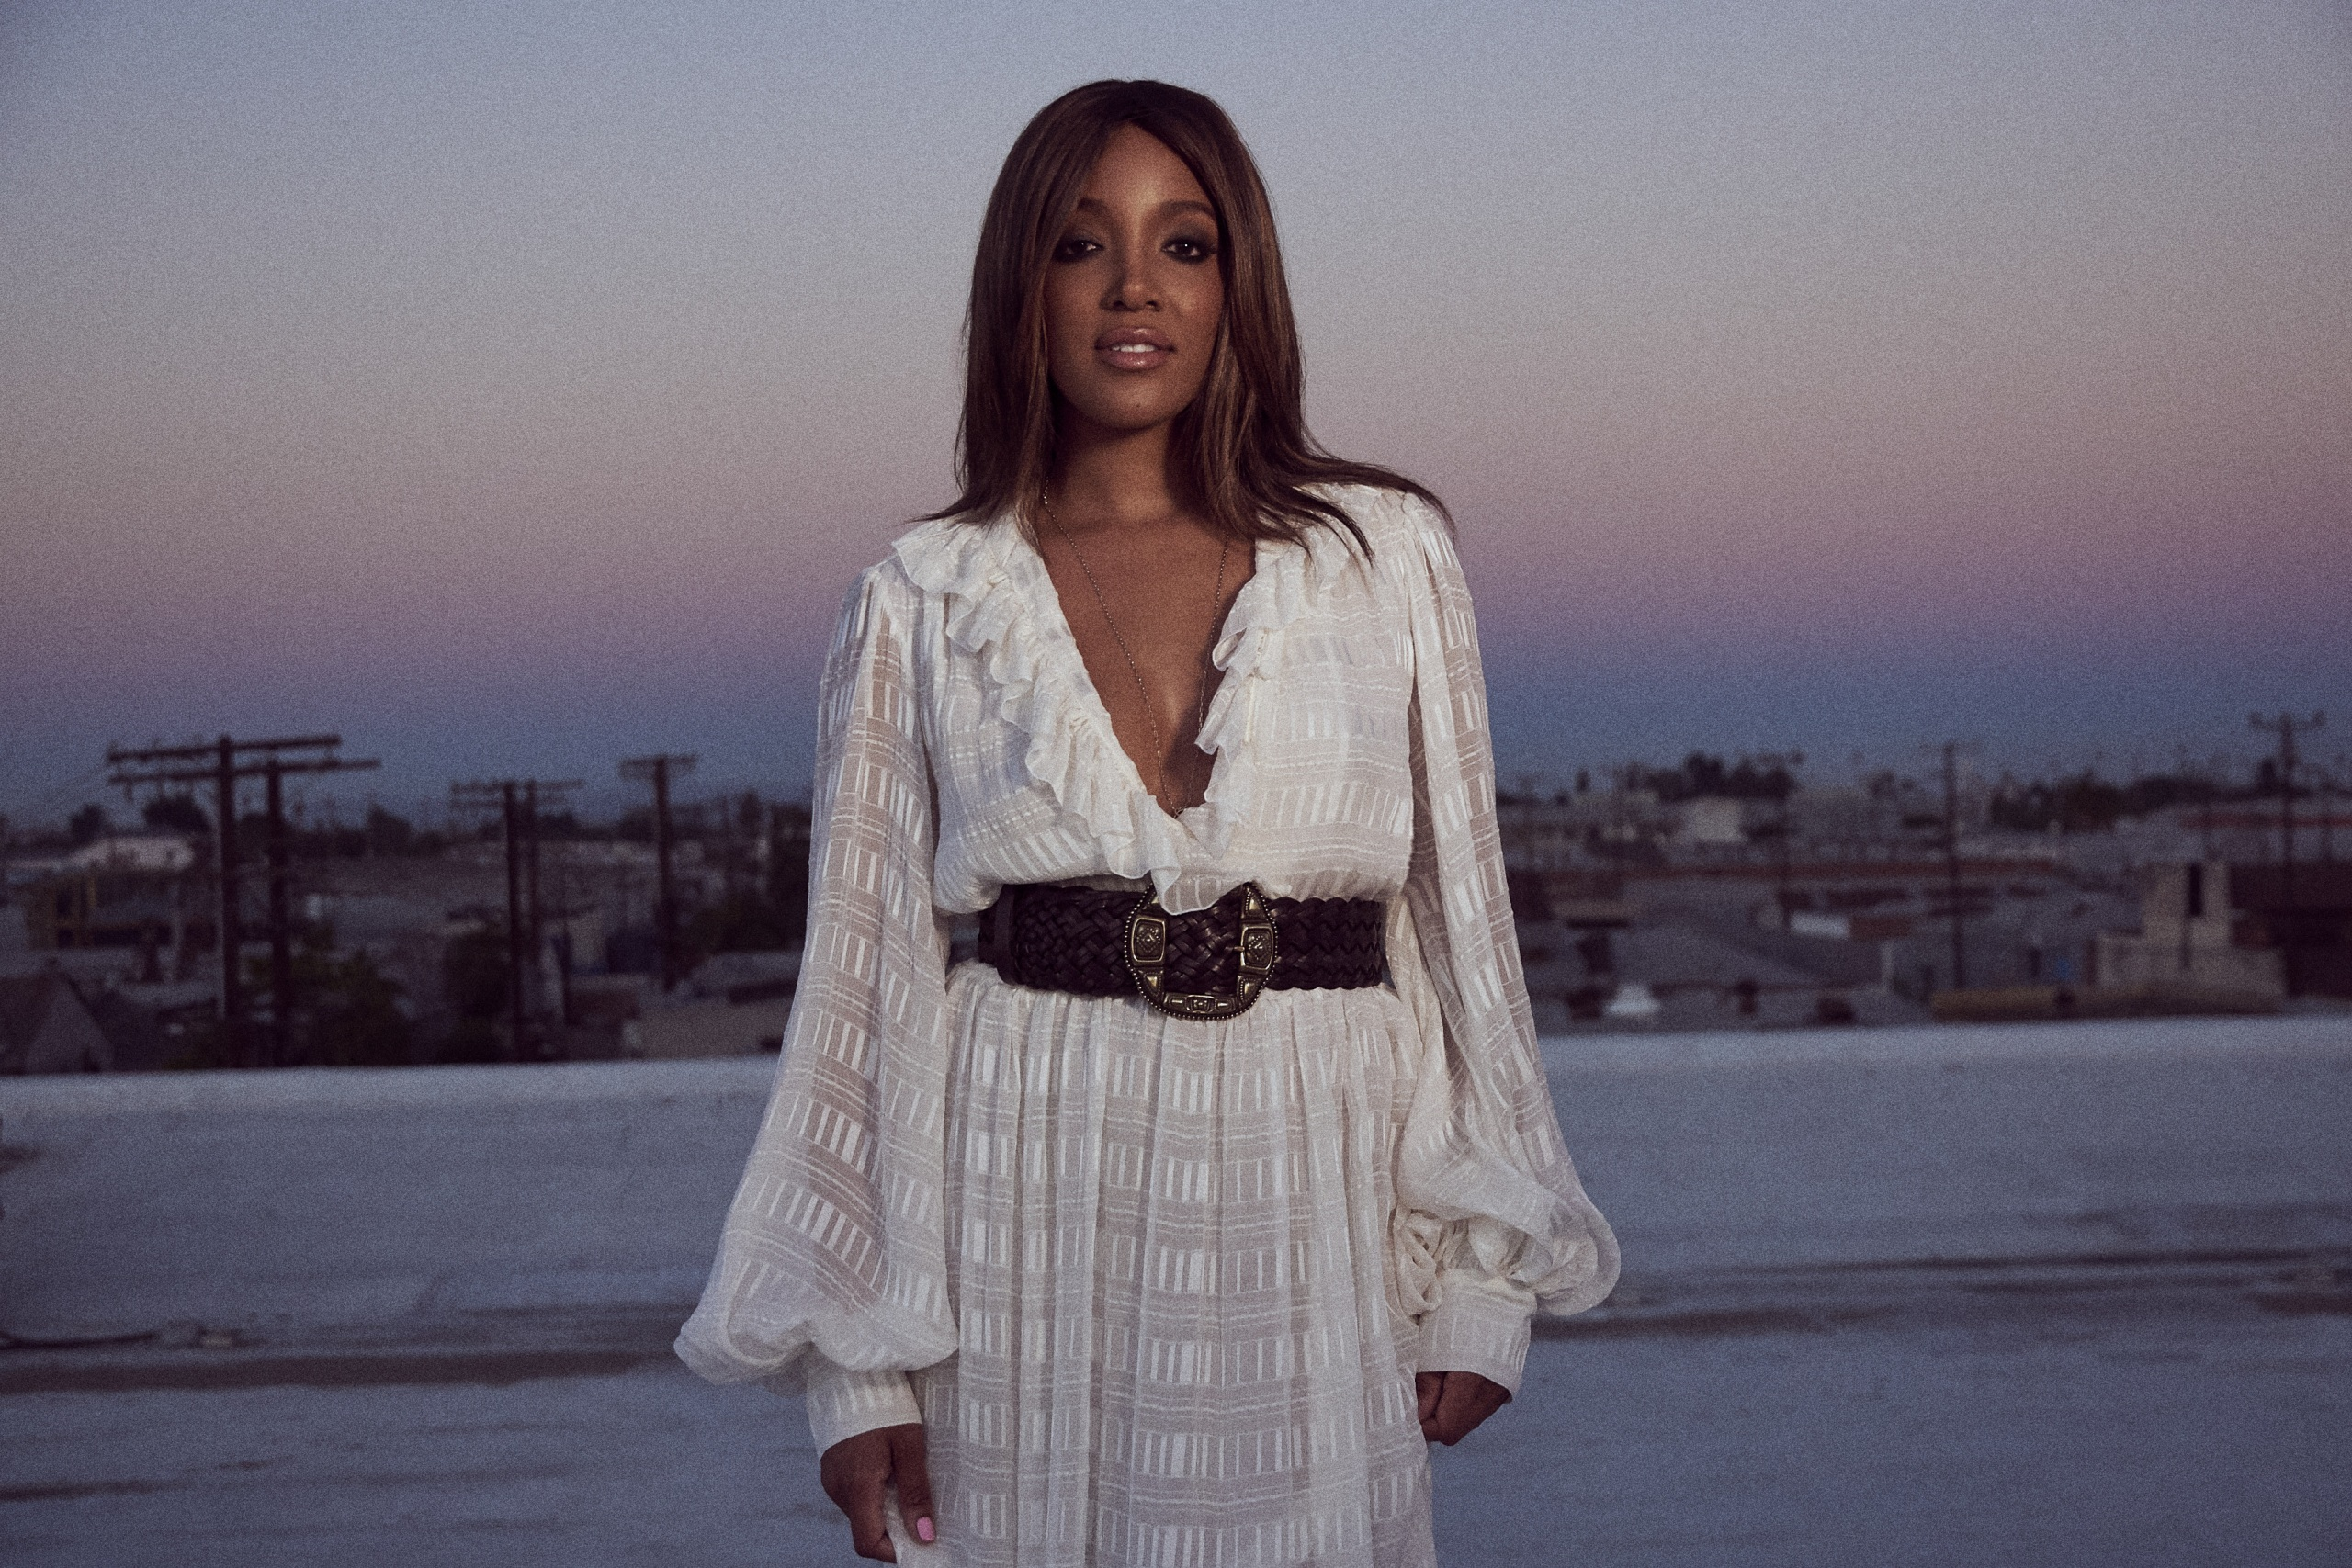 MICKEY GUYTON NOMINATED FOR ACM NEW FEMALE ARTIST OF THE YEAR.